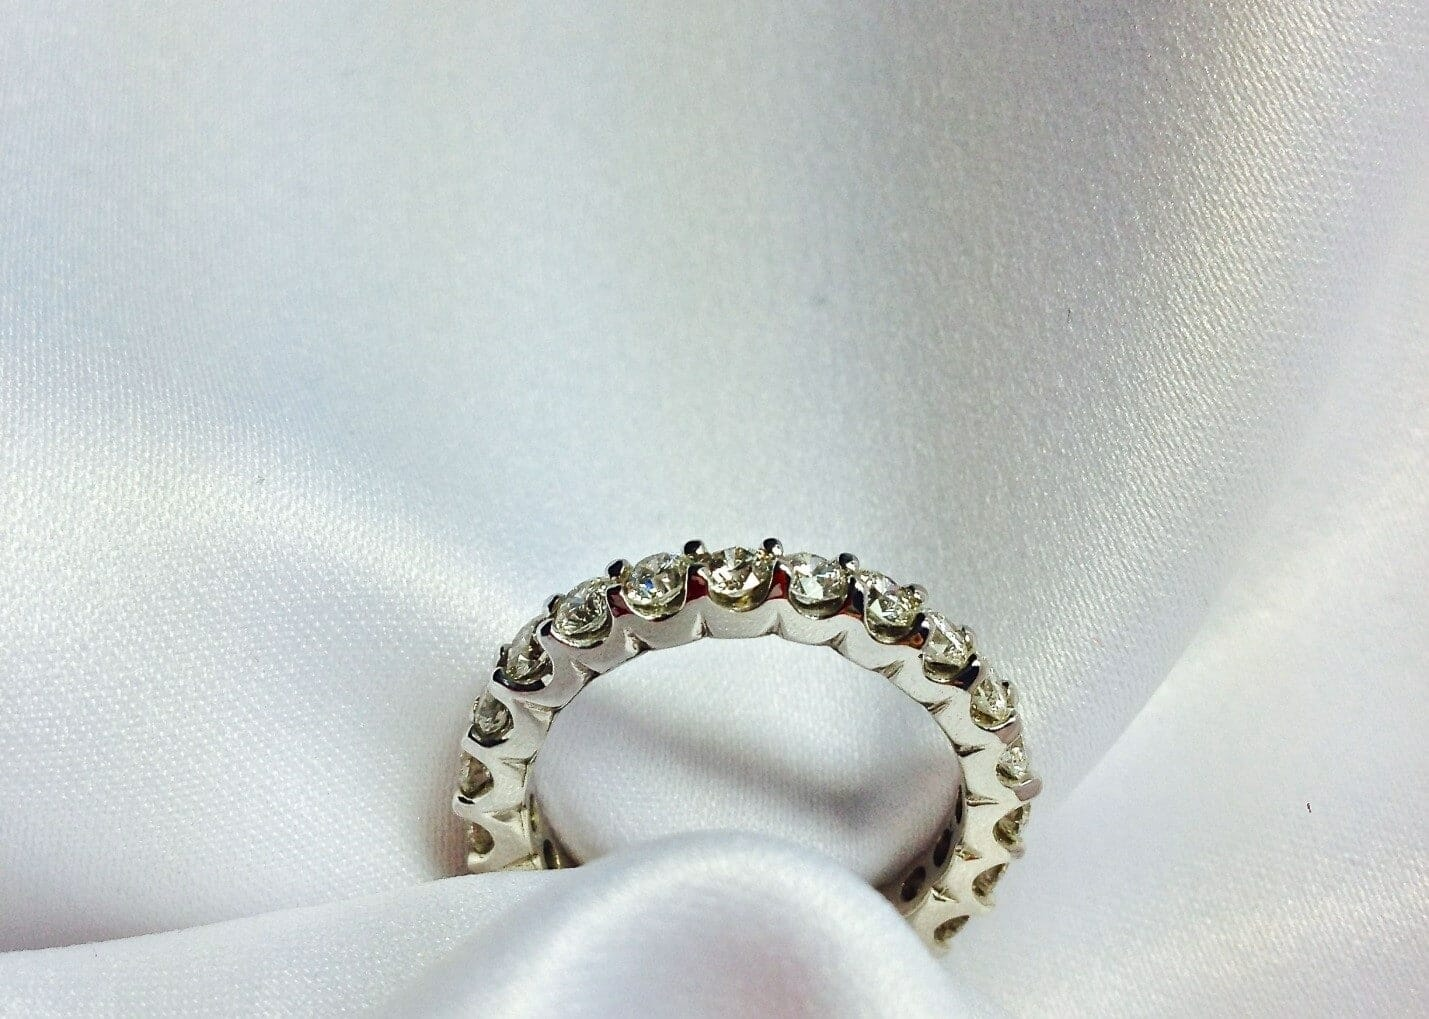 Diamond eternity ring featuring scallop side detail